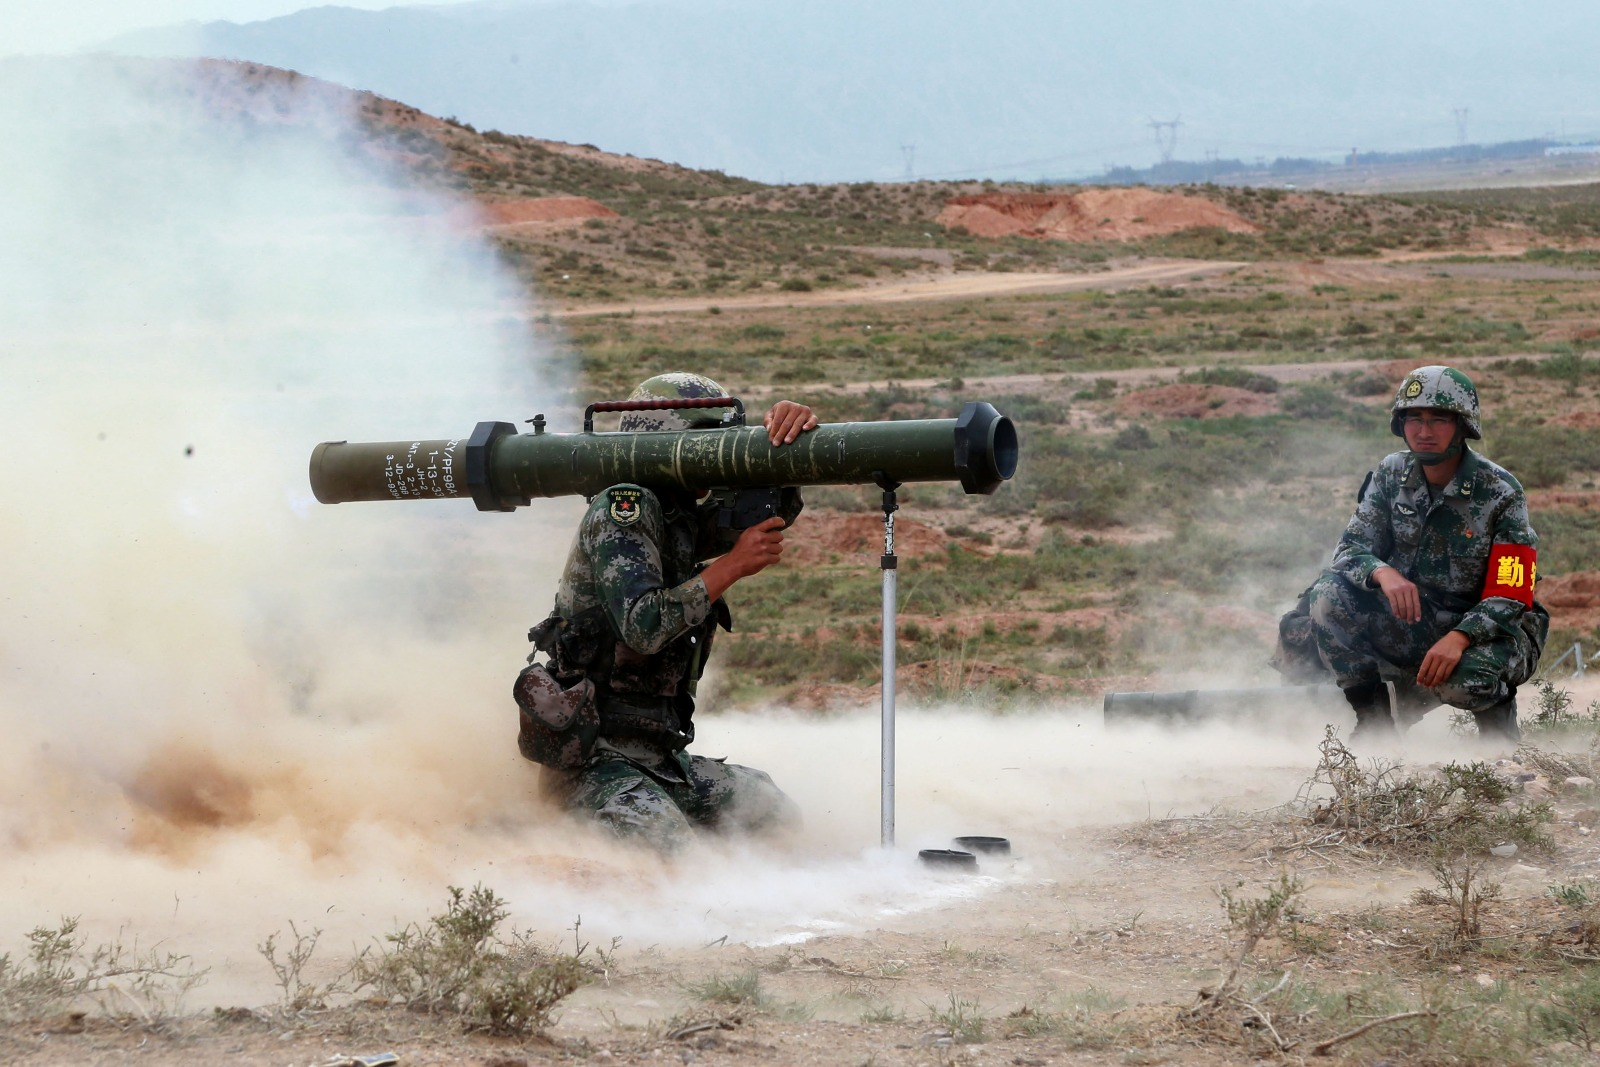 China Is Dreaming Up New Means To Defeat The U.S. Military, Is America Prepared?